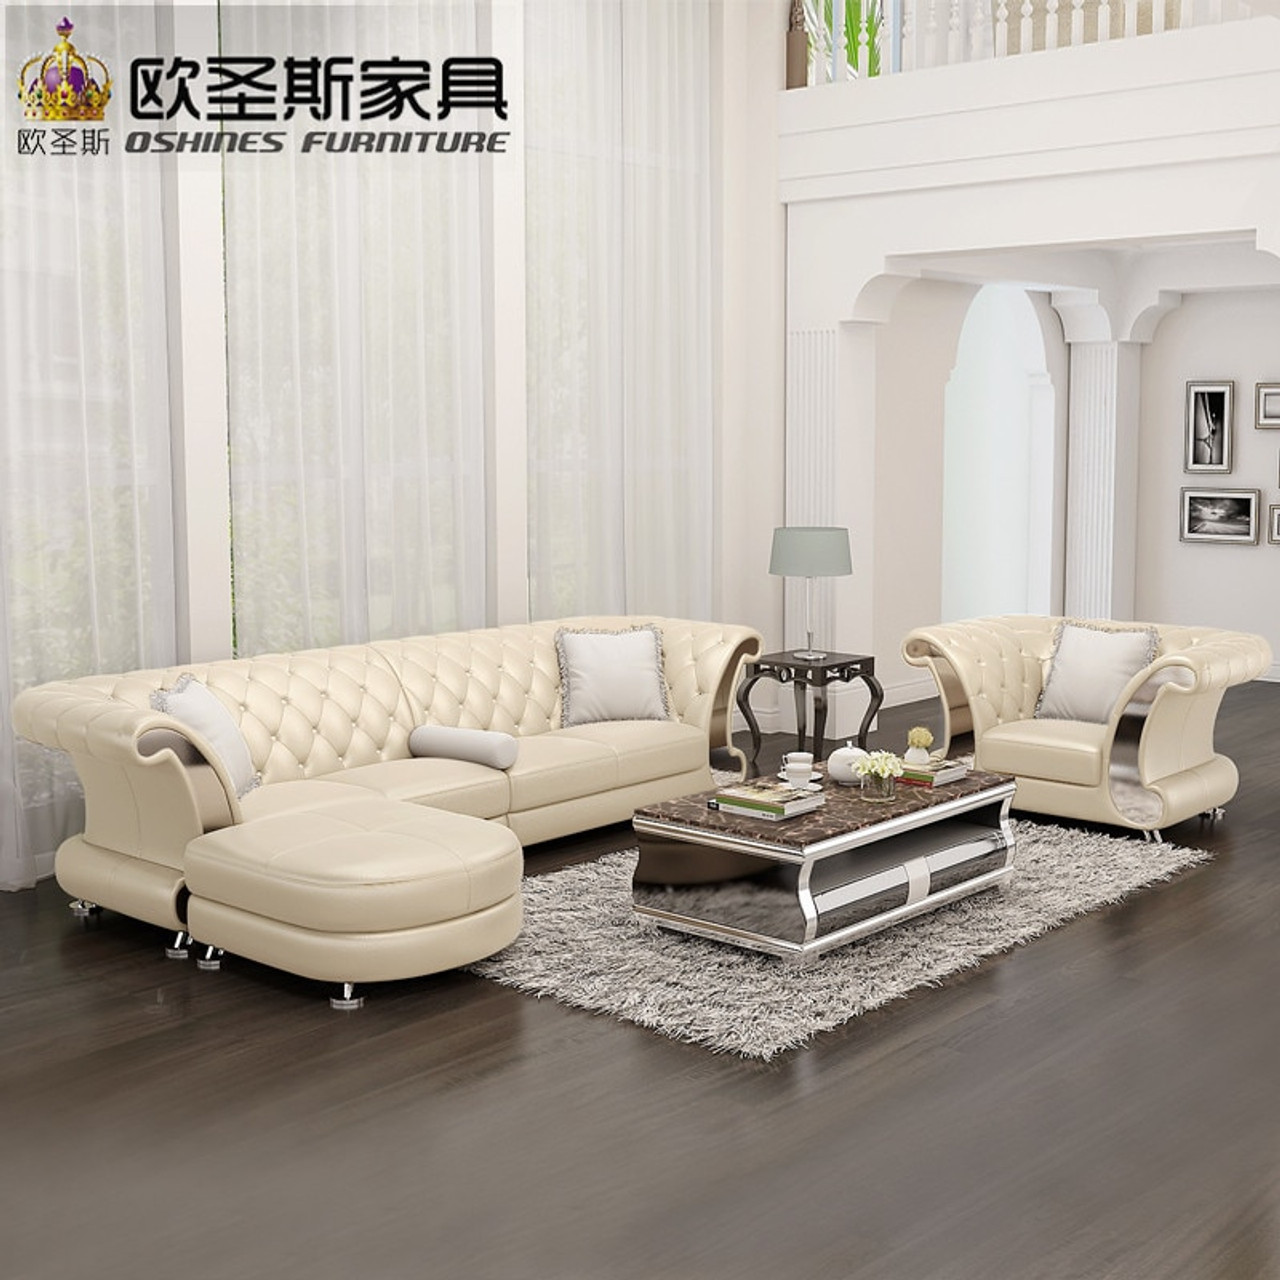 l shaped post modern italy genuine real leather sectional latest corner  furniture living room sofa set designs F20